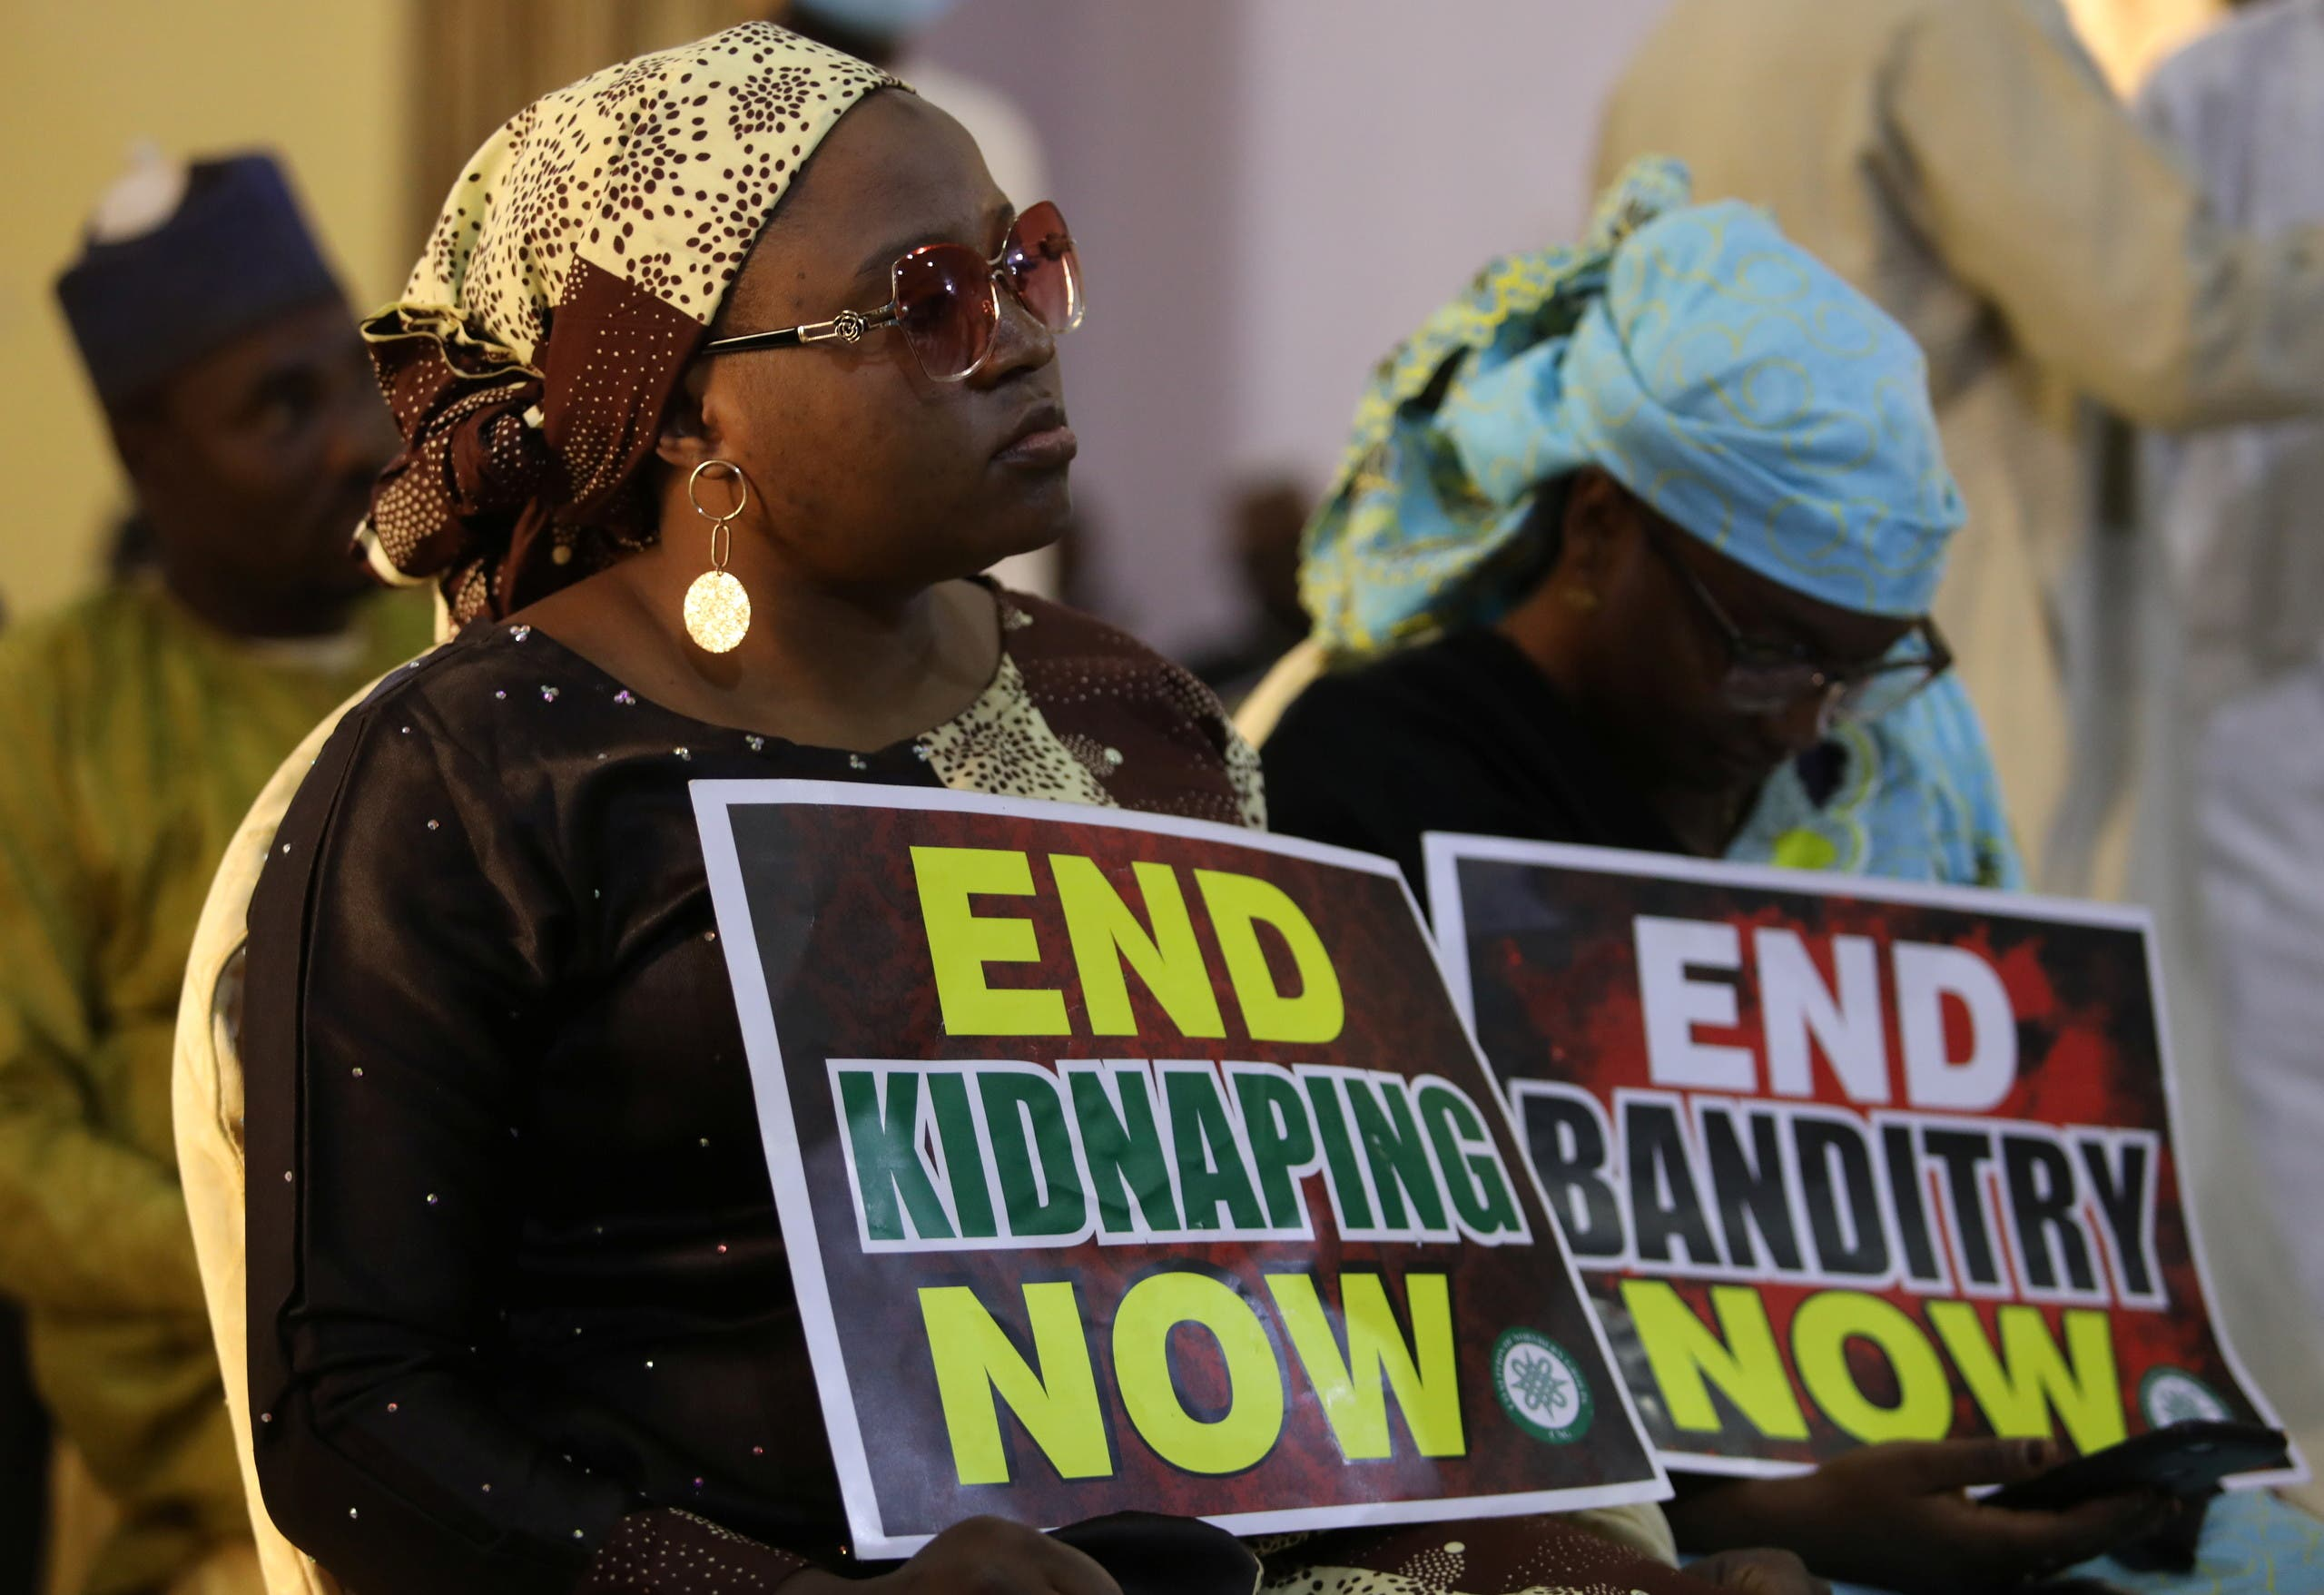 A demonstrator holds a sign during a protest to urge authorities to rescue hundreds of abducted schoolboys, in northwestern state of Katsina, Nigeria, December 17, 2020. (Reuters/Afolabi Sotunde)